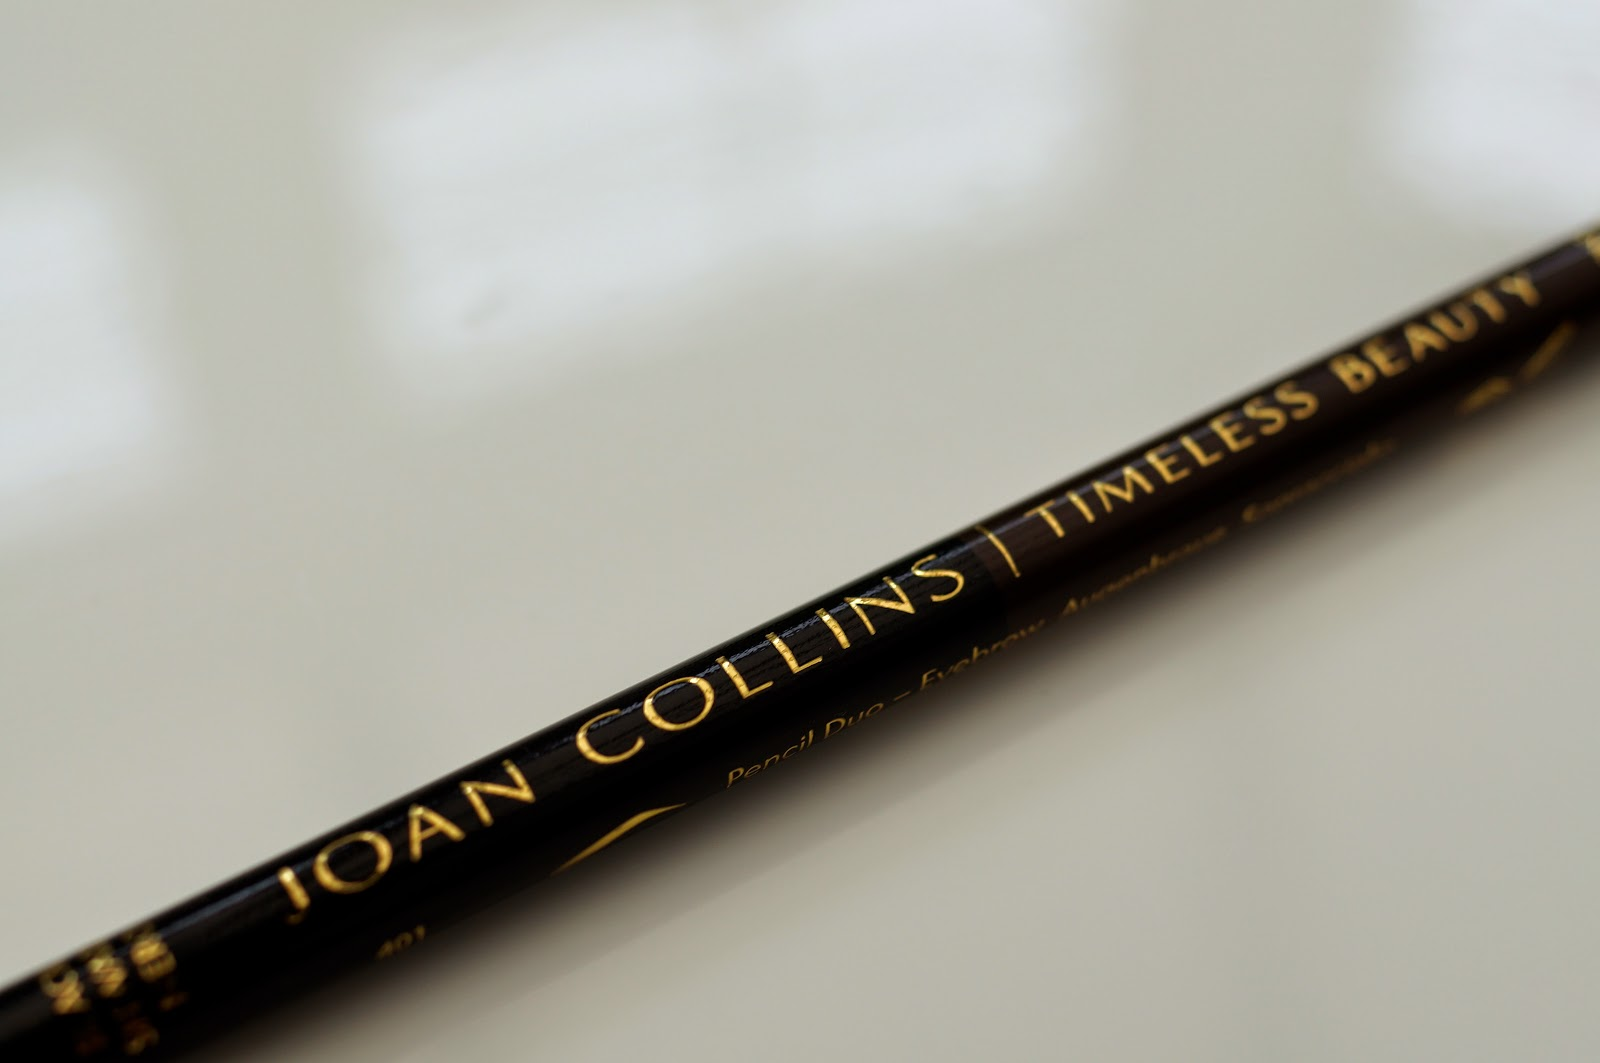 Joan Collins Timeless Beauty Contour Brow Liner